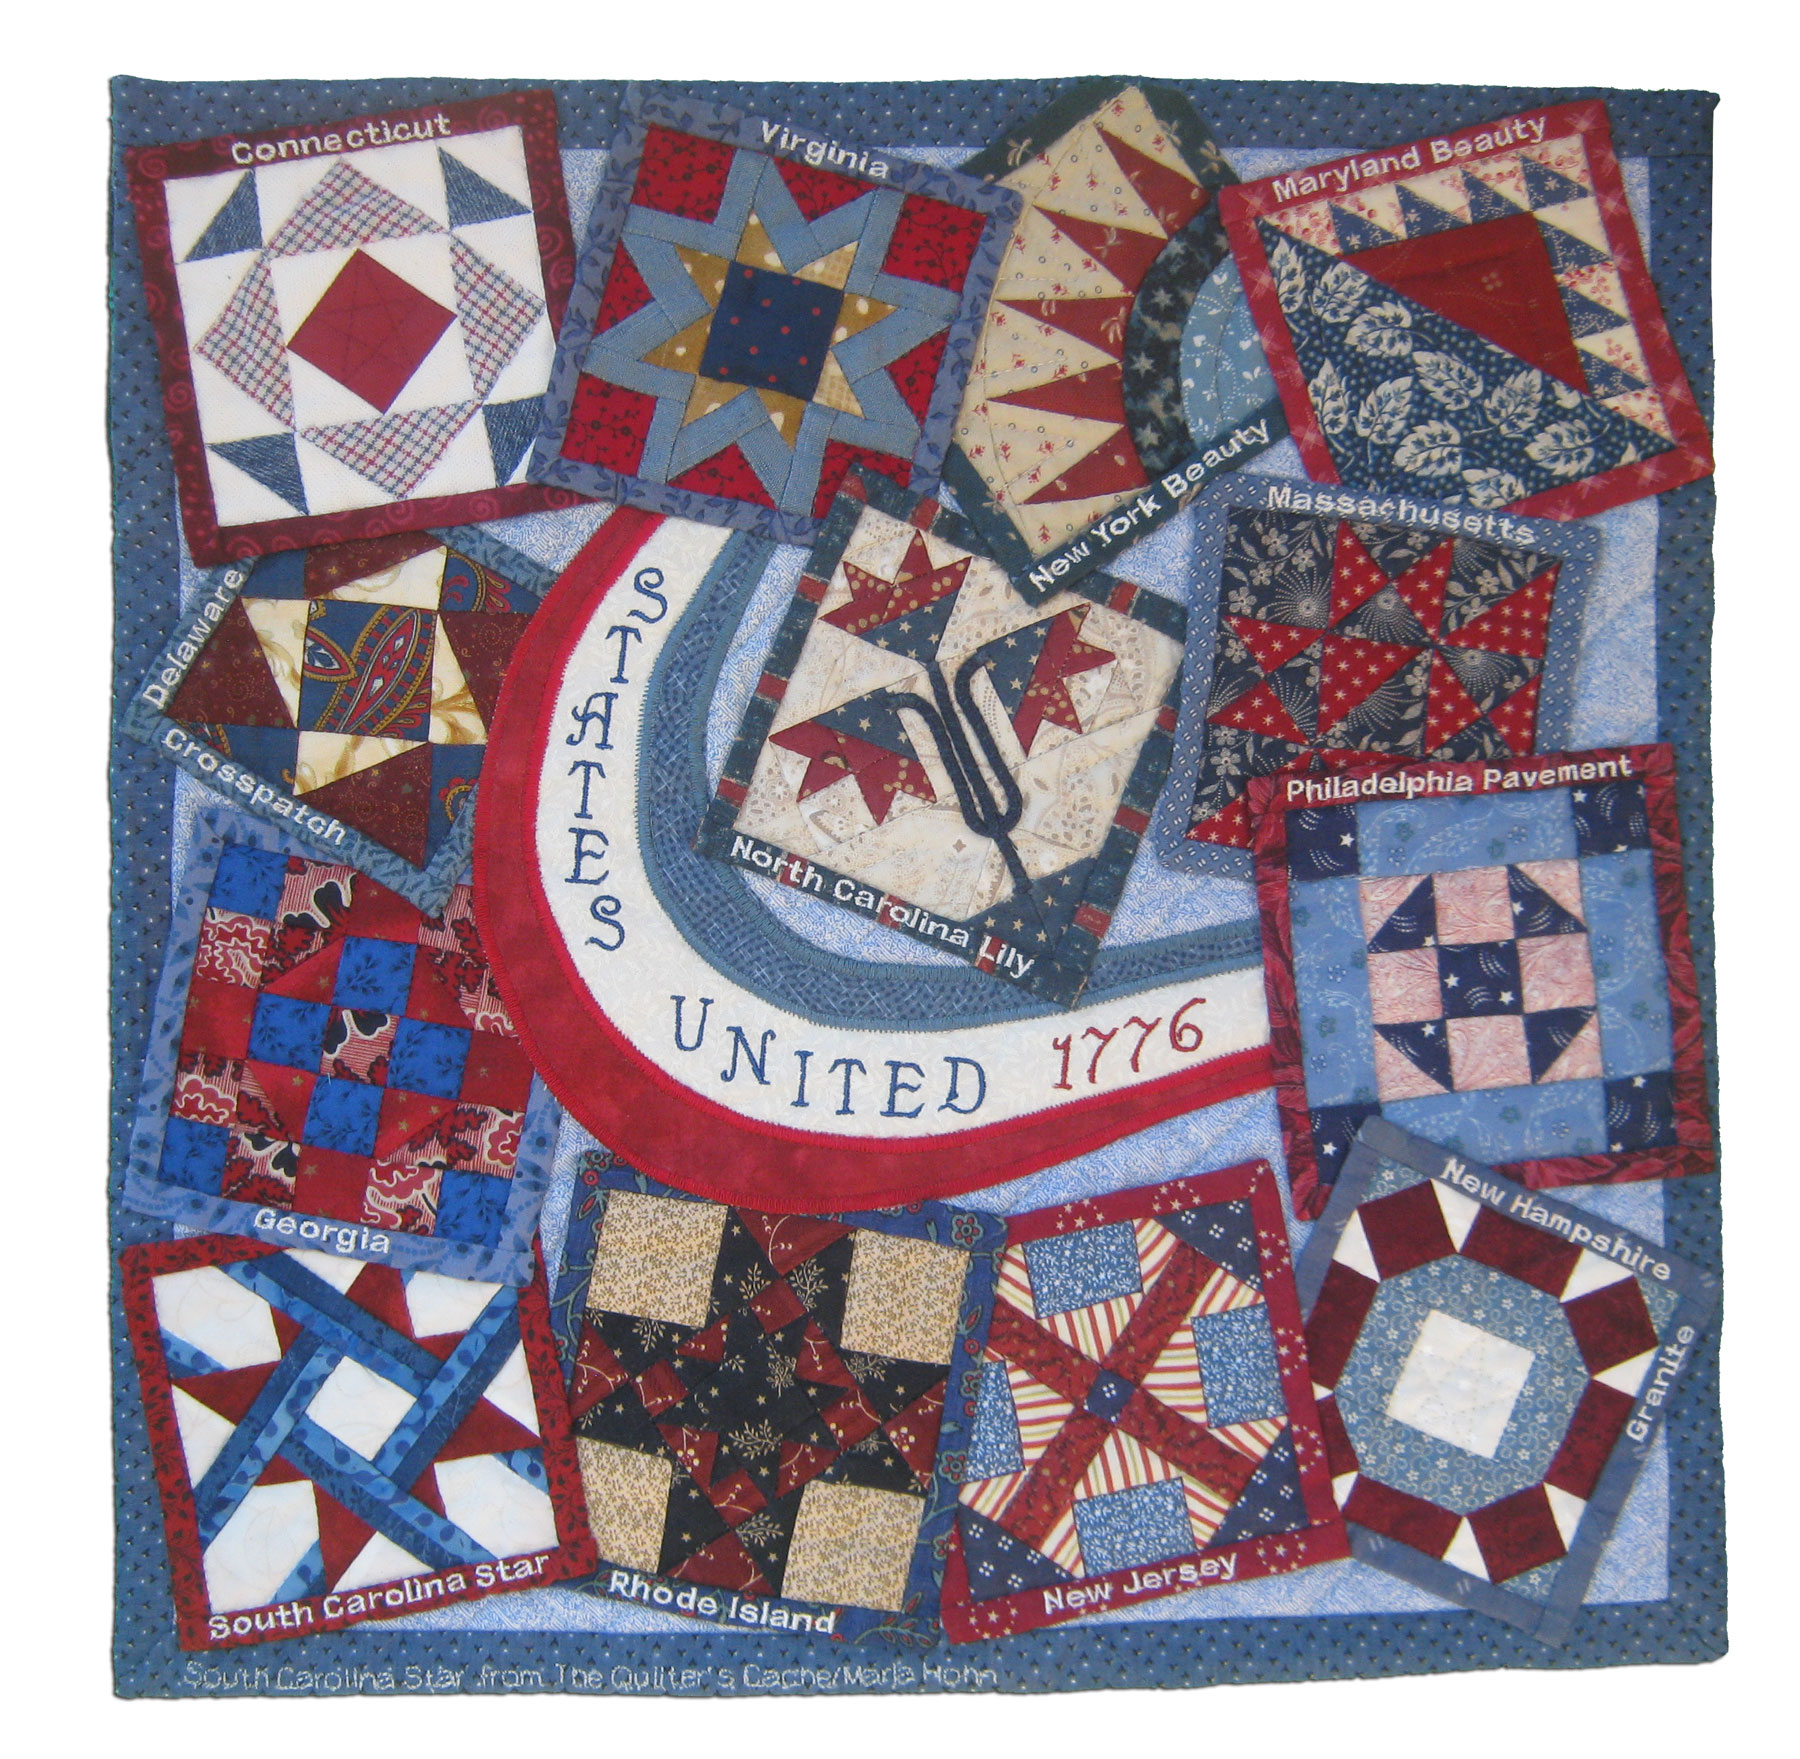 States United 1776 (side A), Top By Broadway Gentlemen's Quilting Auxiliary members: Christina Cocch